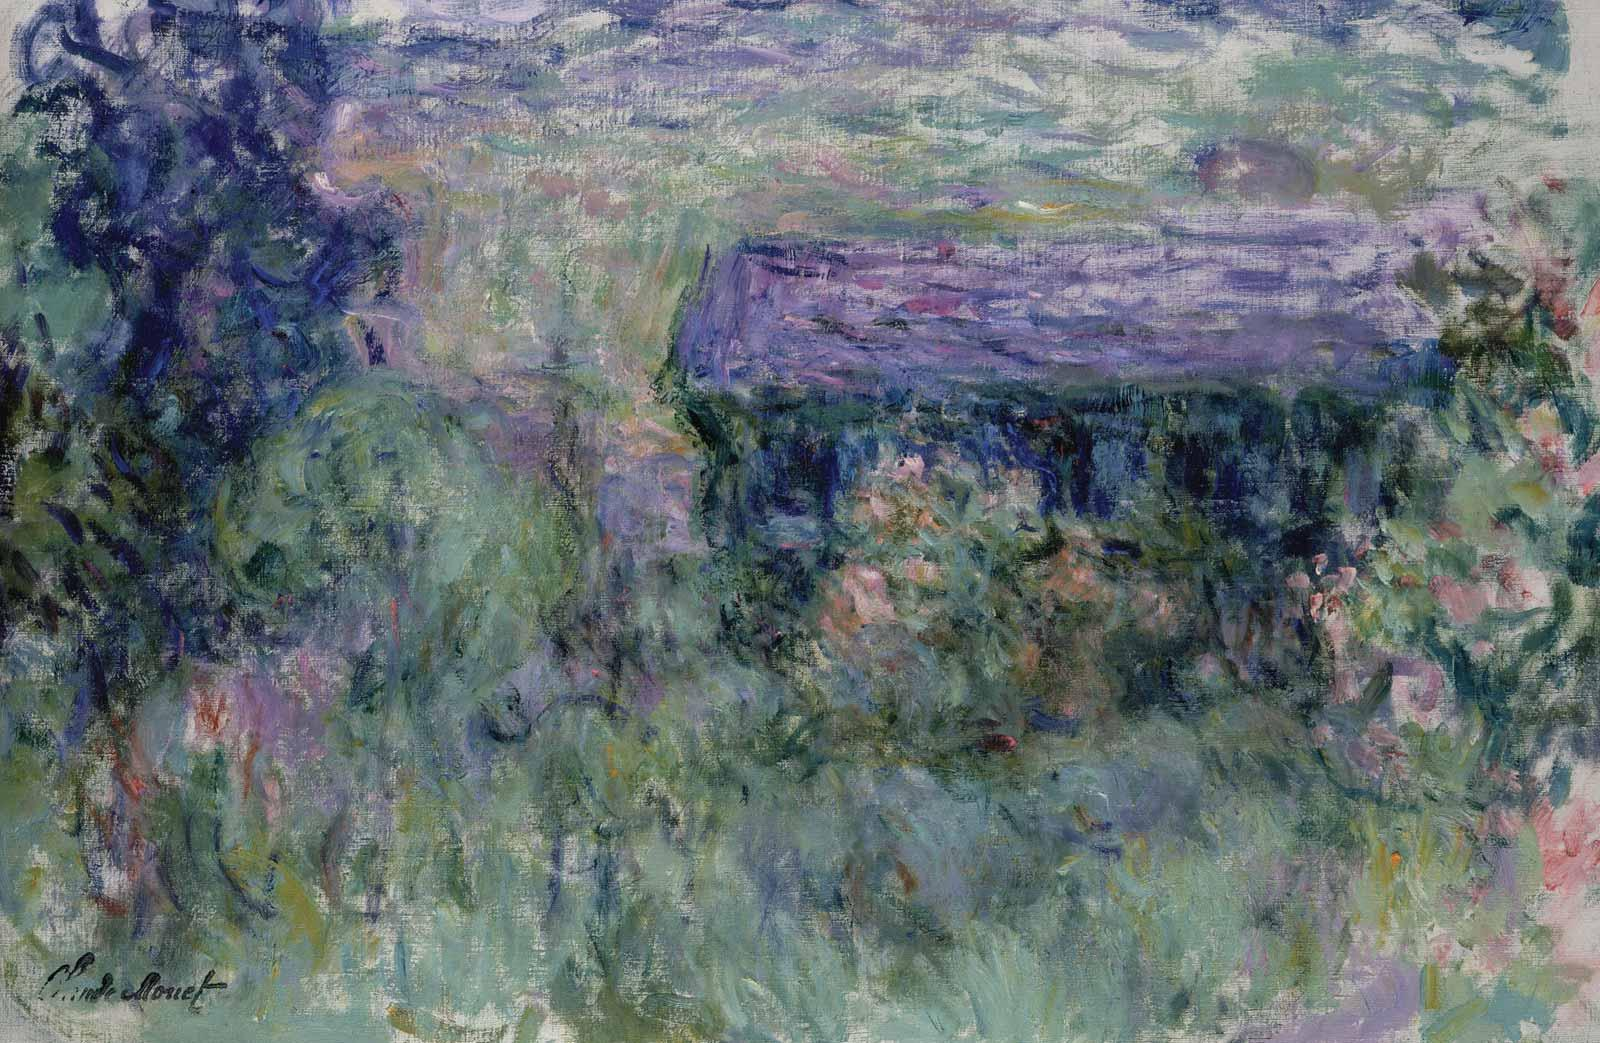 Claude Monet, The House Seen Through the Roses, 1925-26.